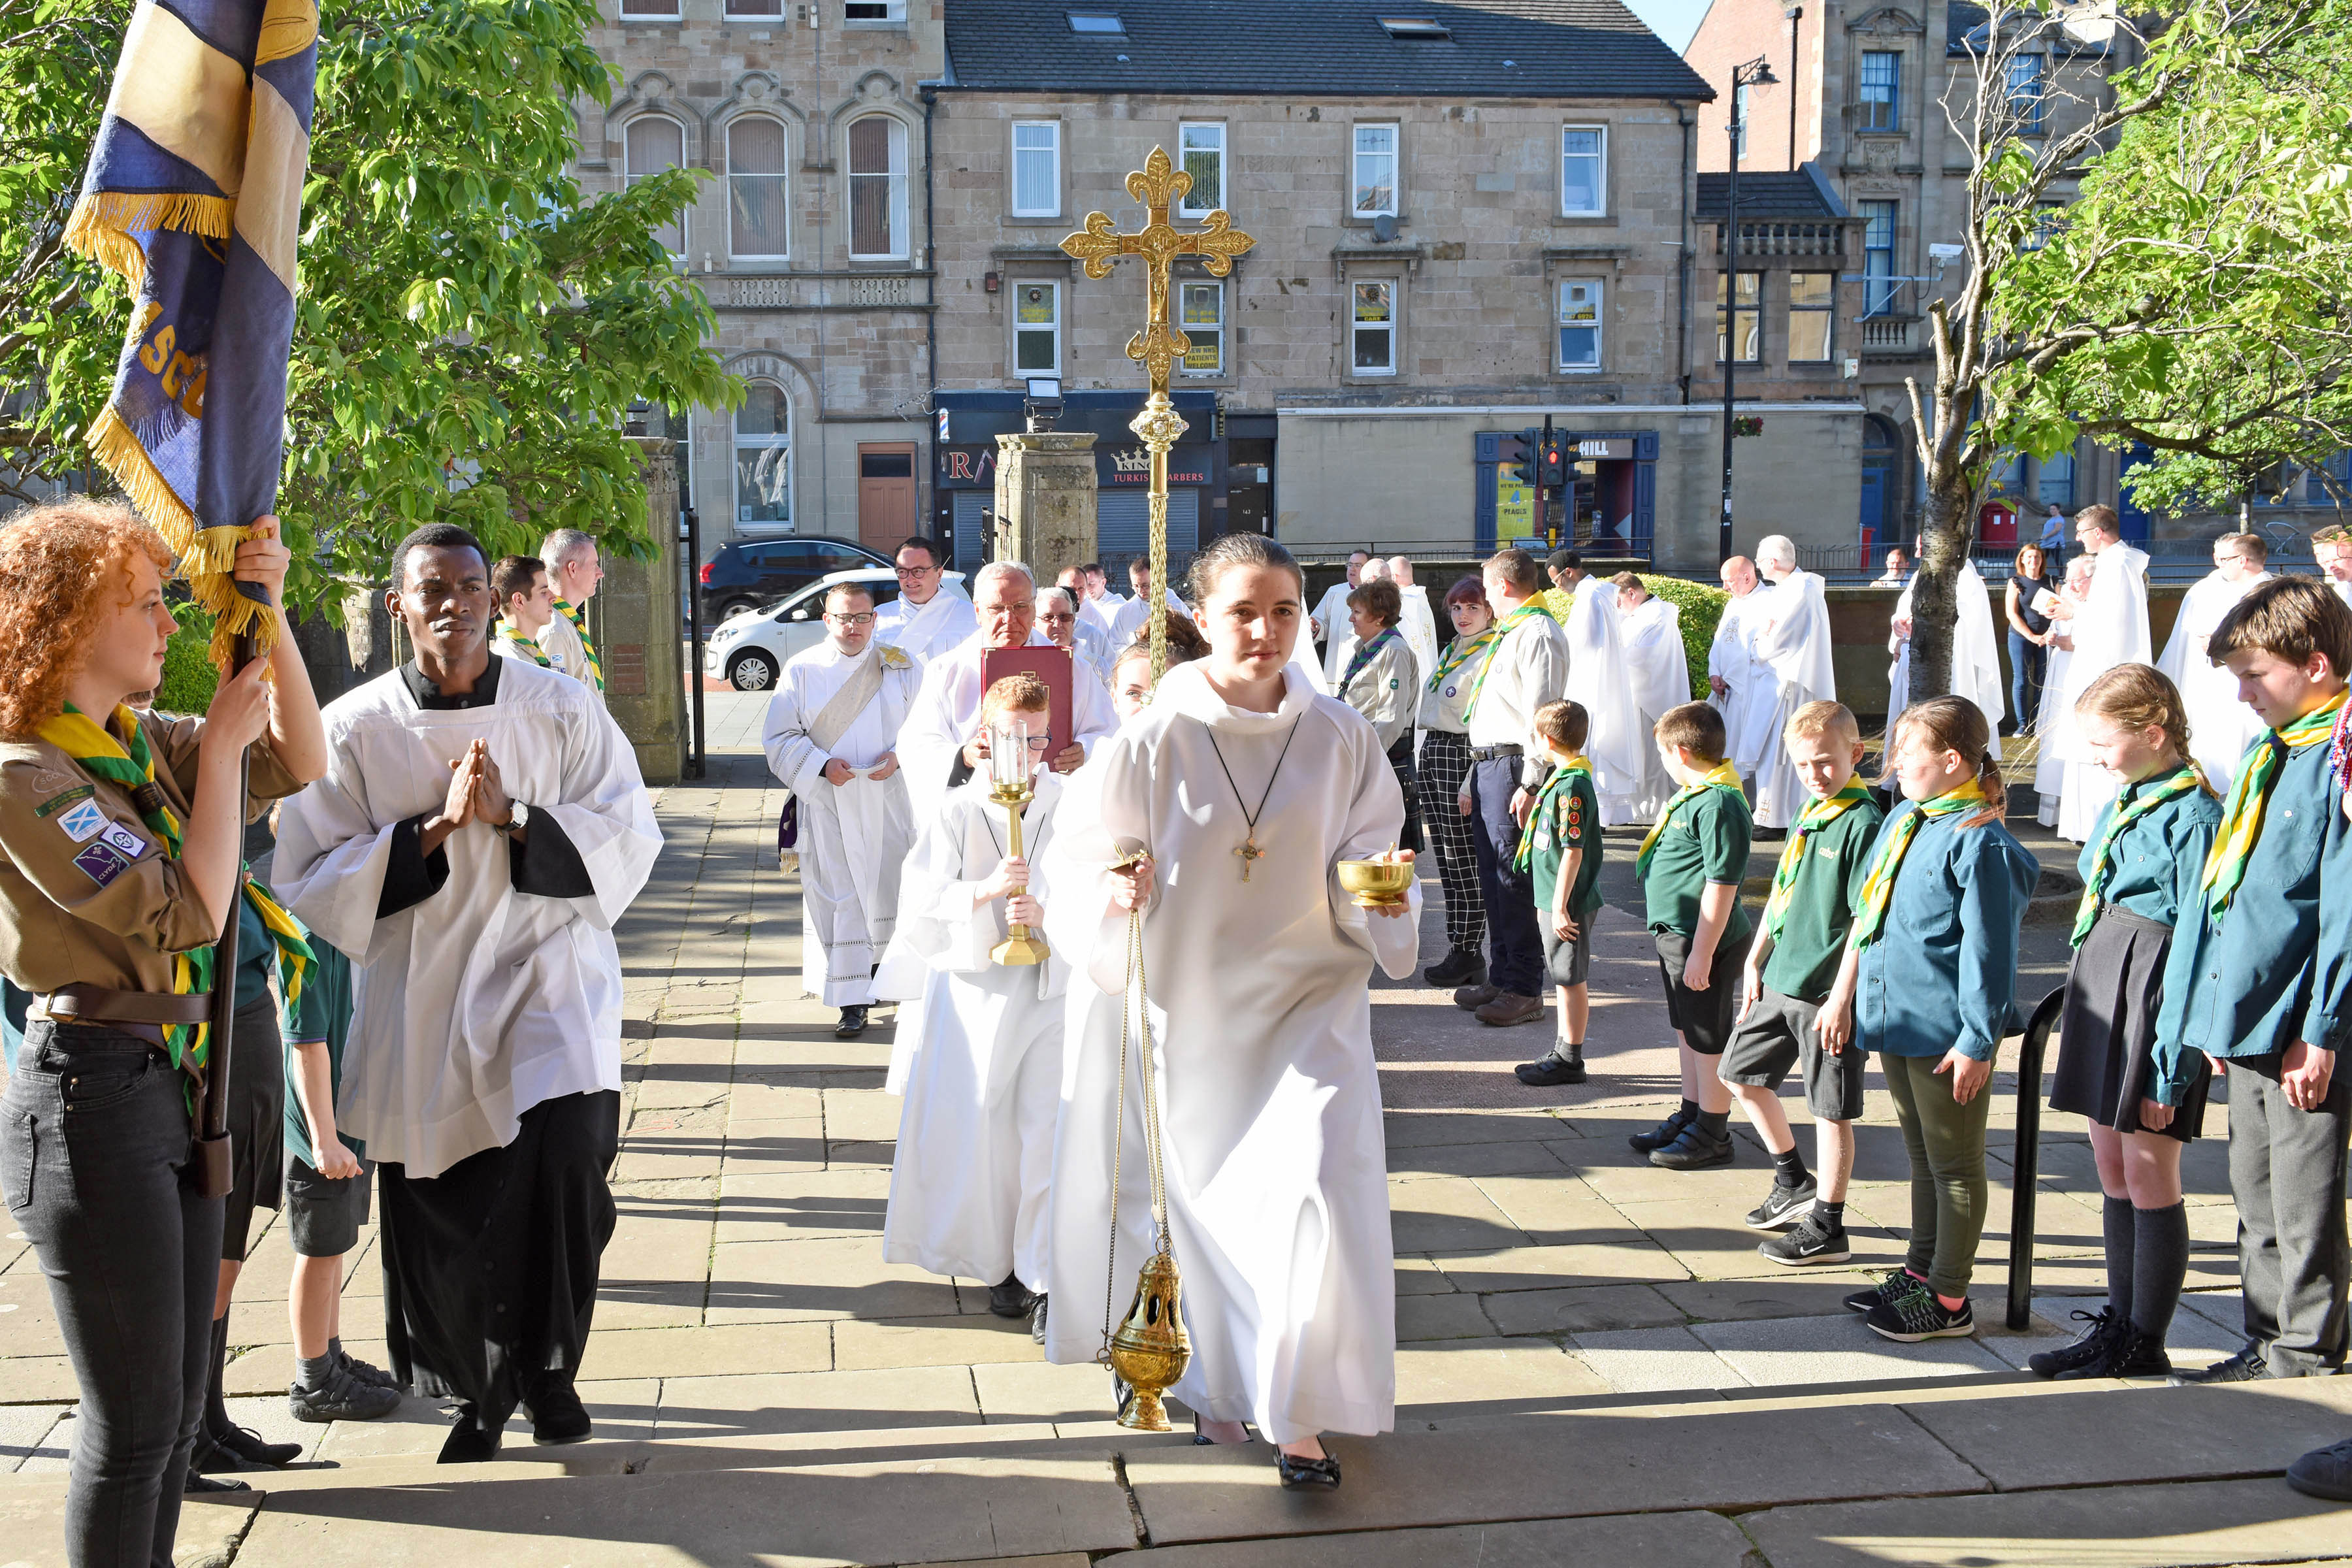 Ordination to the Priesthood of Rev. Charles Coyle for the Diocese of Motherwell on The Vigil of the Sacred Heart, 27th June 2019 at St Columbkille's, Rutherglen.